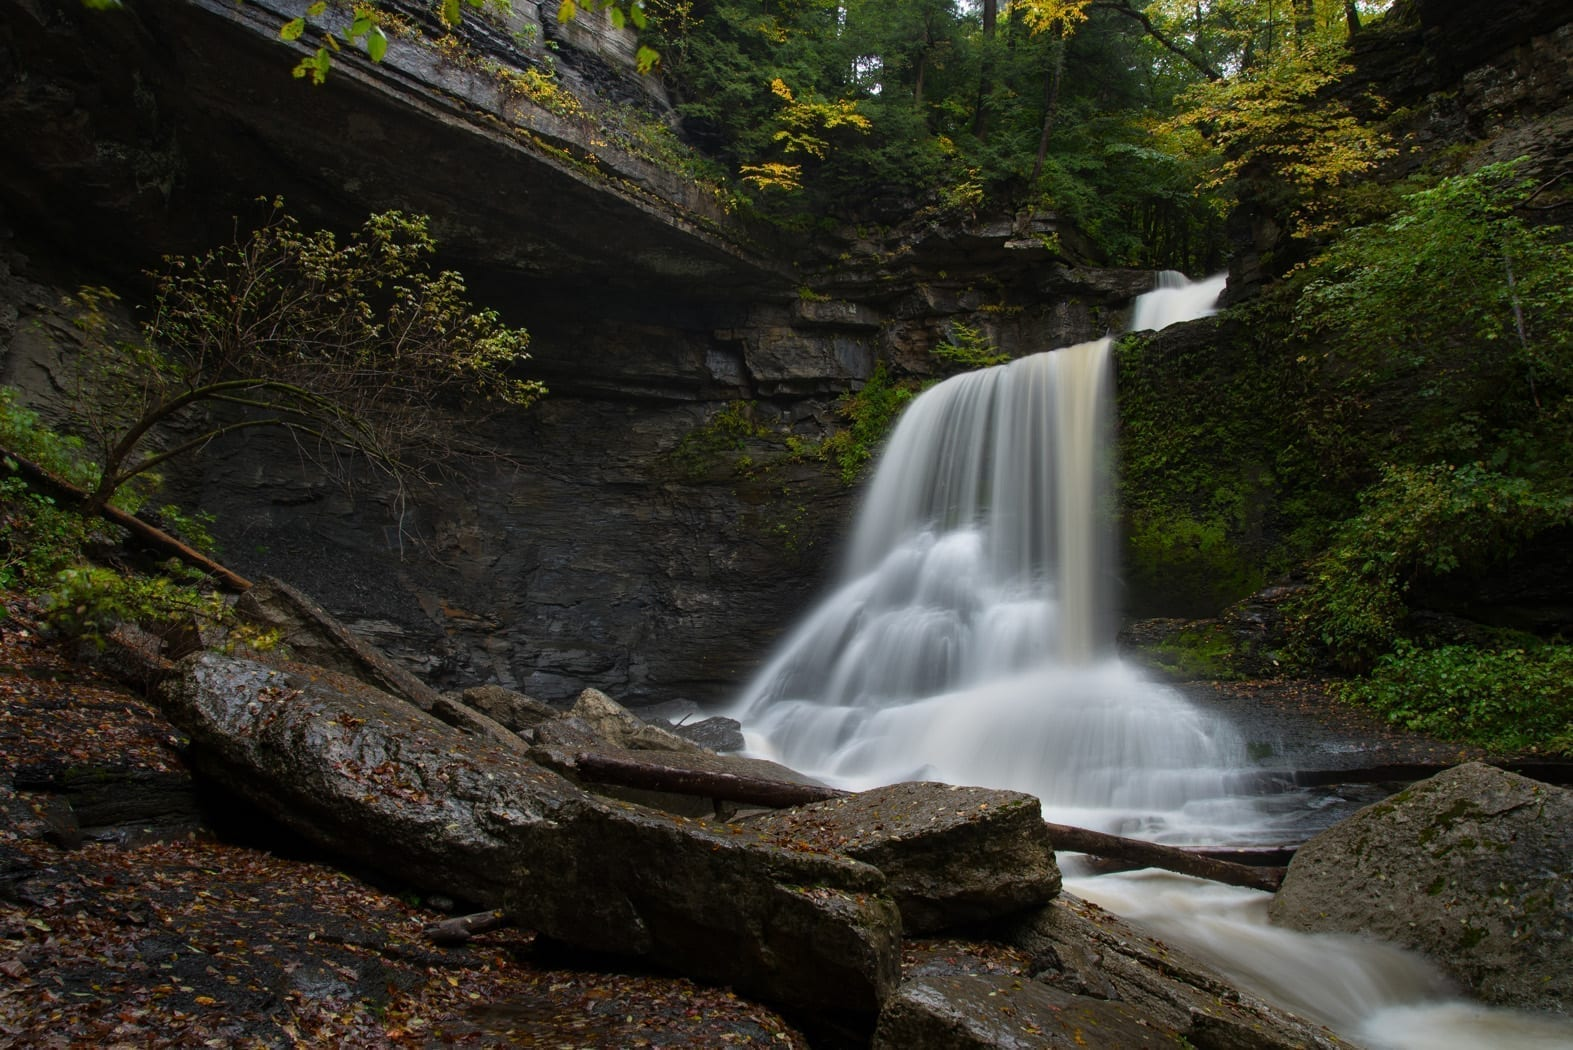 Cowsheds waterfall, Fillmore Glen